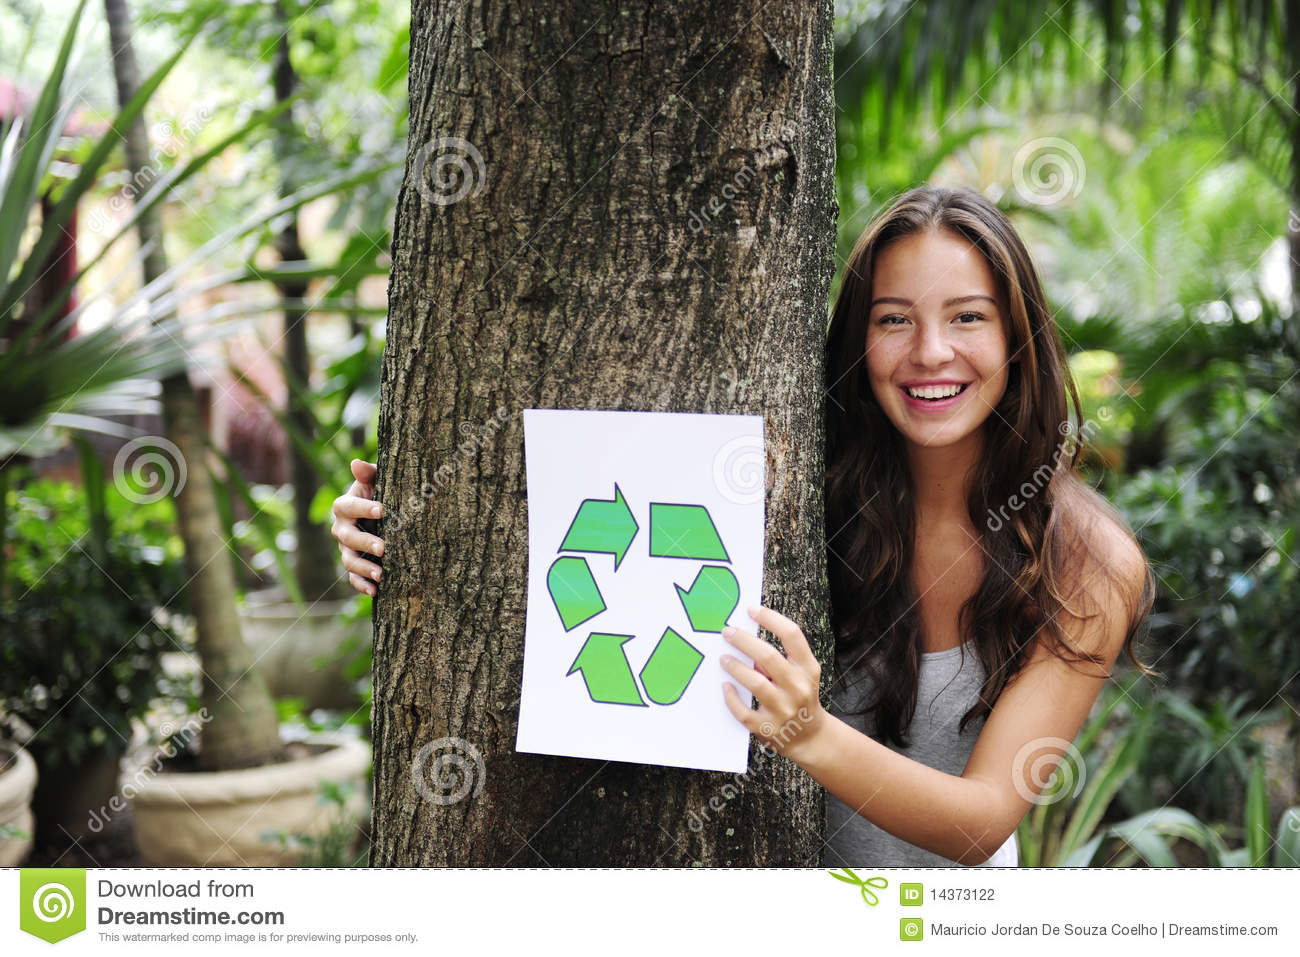 Nature Images 2mb: Recycling: Woman In Forest With Recycle Sign Stock